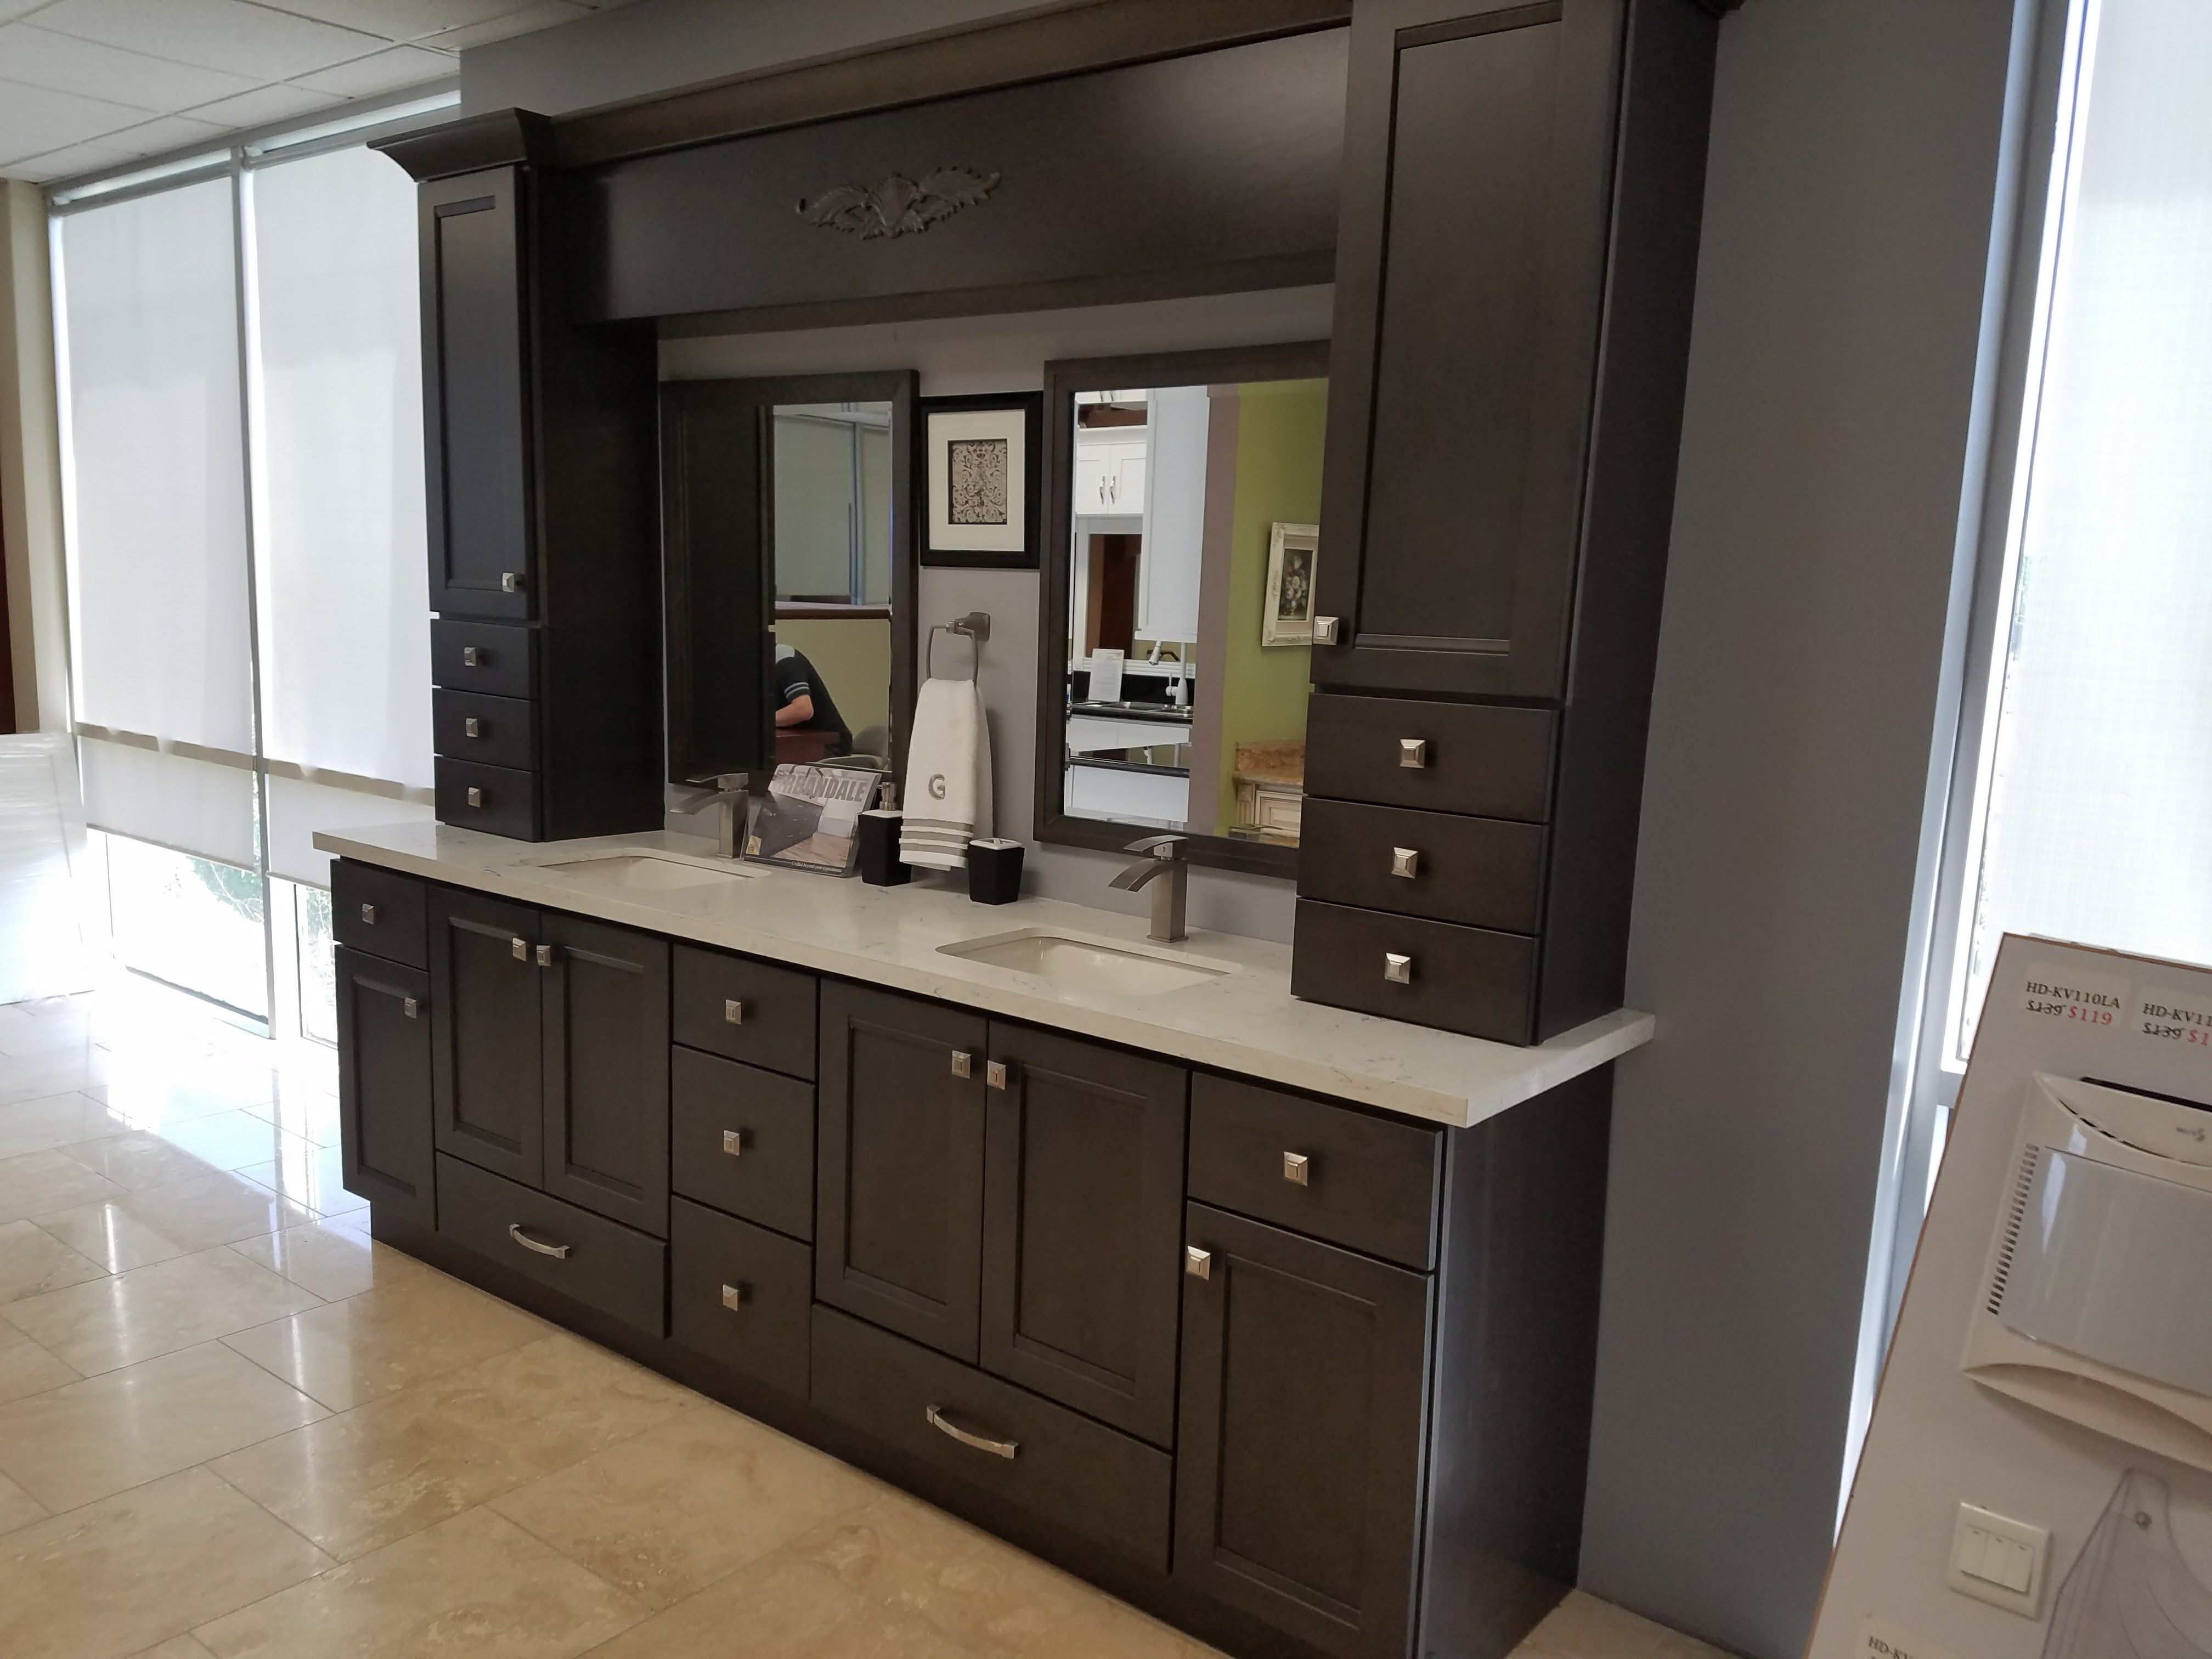 Kitchen Cabinets San Diego Cabinet Makers San Diego Carlsbad Ca In 2020 Kitchen Cabinets Home Depot Prefab Kitchen Cabinets Kitchen Cabinets